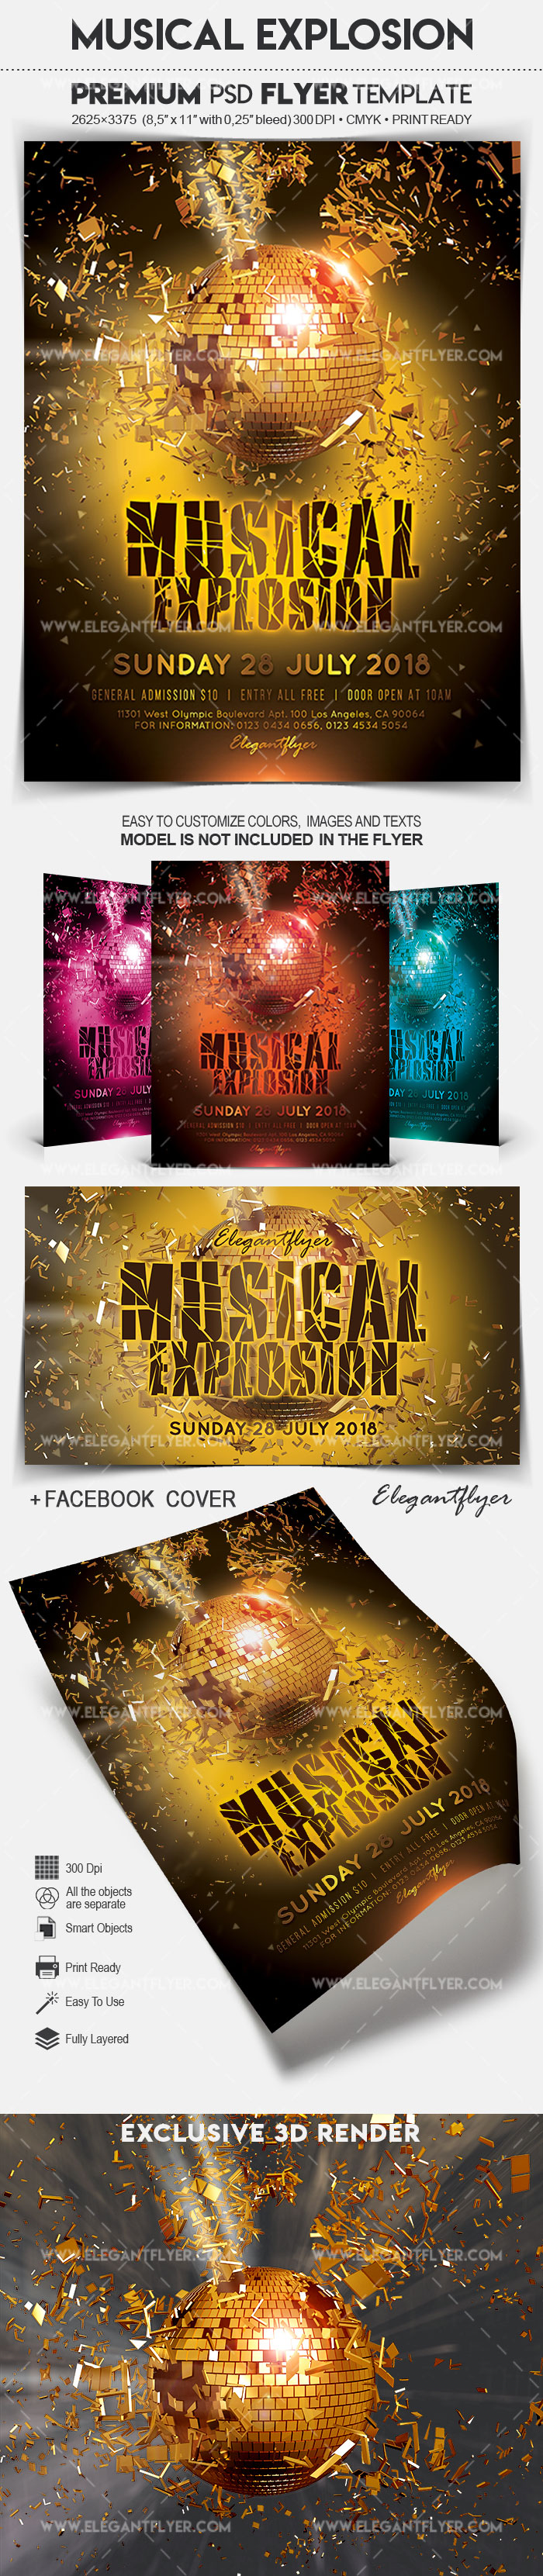 Musical Explosion – Flyer PSD Template